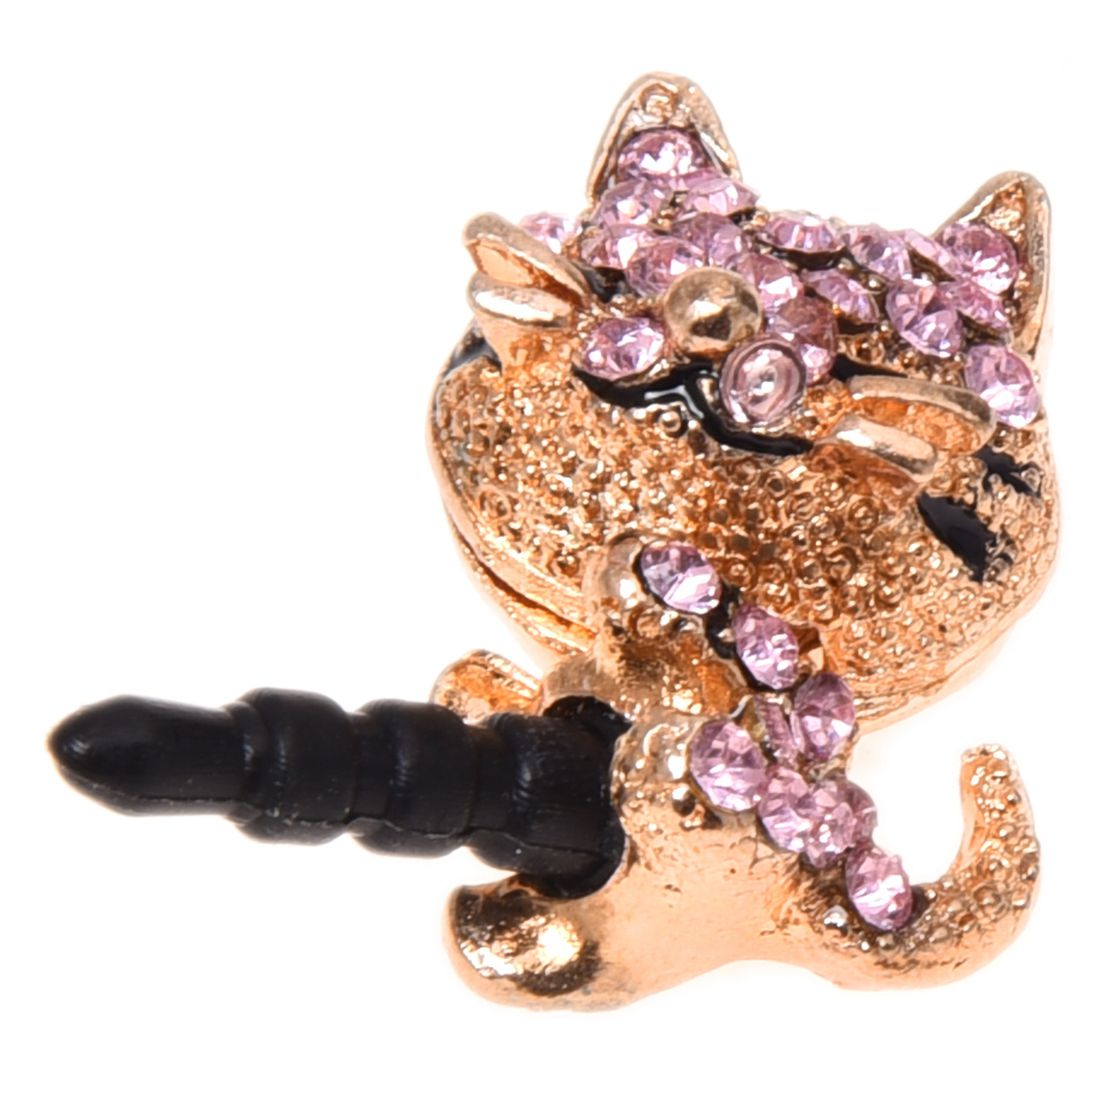 Mobile Phone Accessories Cellphones & Telecommunications New-1x 3d Dust-proof Plug In The Shape Of A Cute Cat Crystal Diamond Luxurious 3.5mm Earphone Plug Dust Cap Pink Earphone Plug Promote The Production Of Body Fluid And Saliva